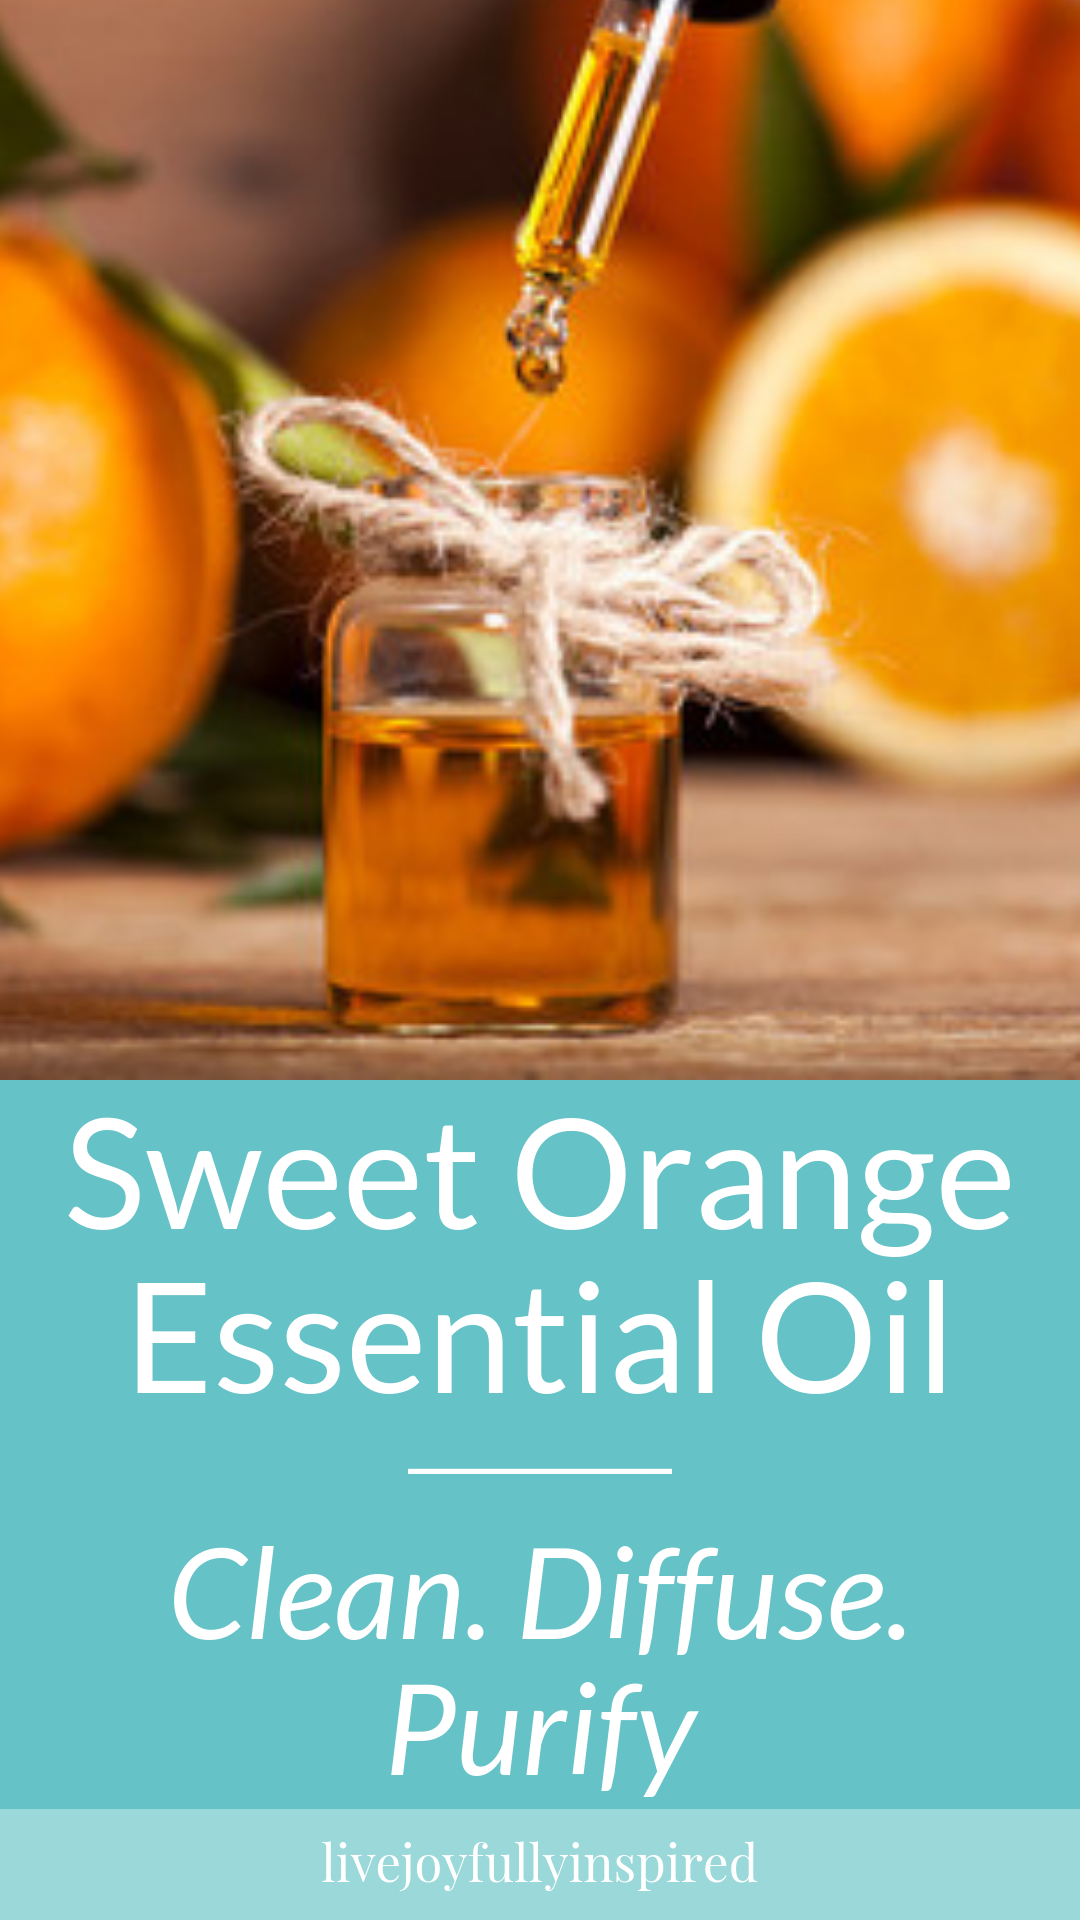 Sweet Orange essential oil is calming and uplifting. It brings a positive vibe to you the instant you get a whiff. Adding a few drops of this oil to your cleaning solution increases the cleaning power. #sweetorangeessentialoil #uplift #diffuse